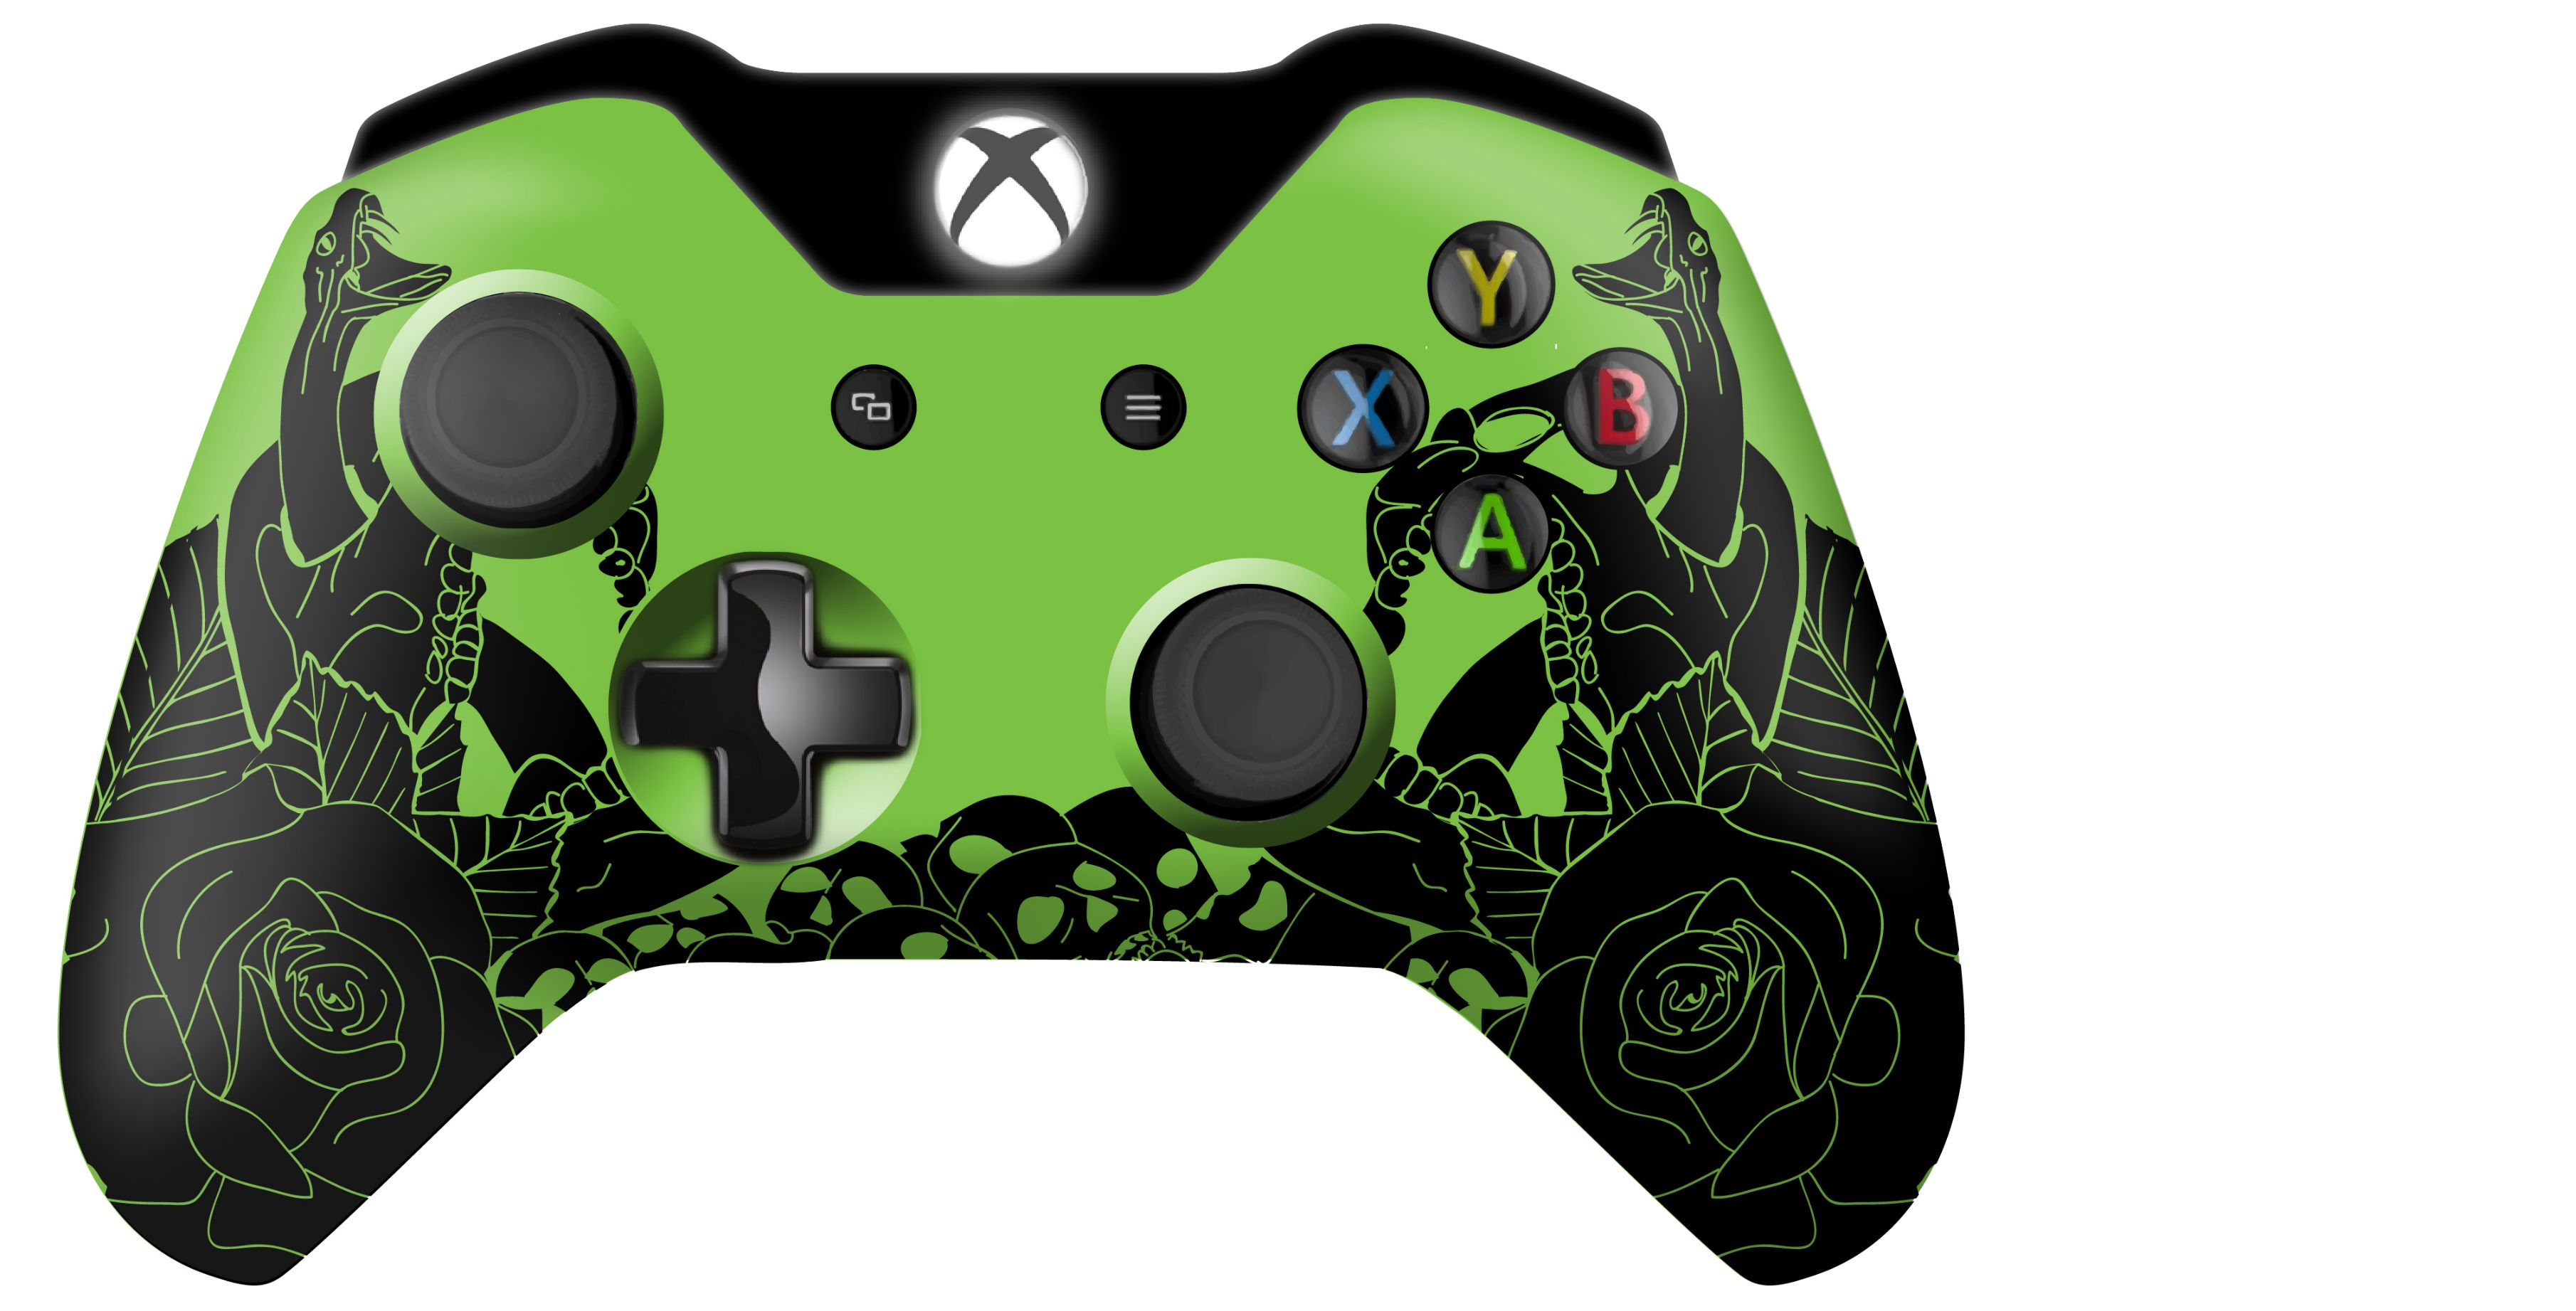 Coloring Pages Xbox 360 : Xbox one controller drawing at getdrawings.com free for personal